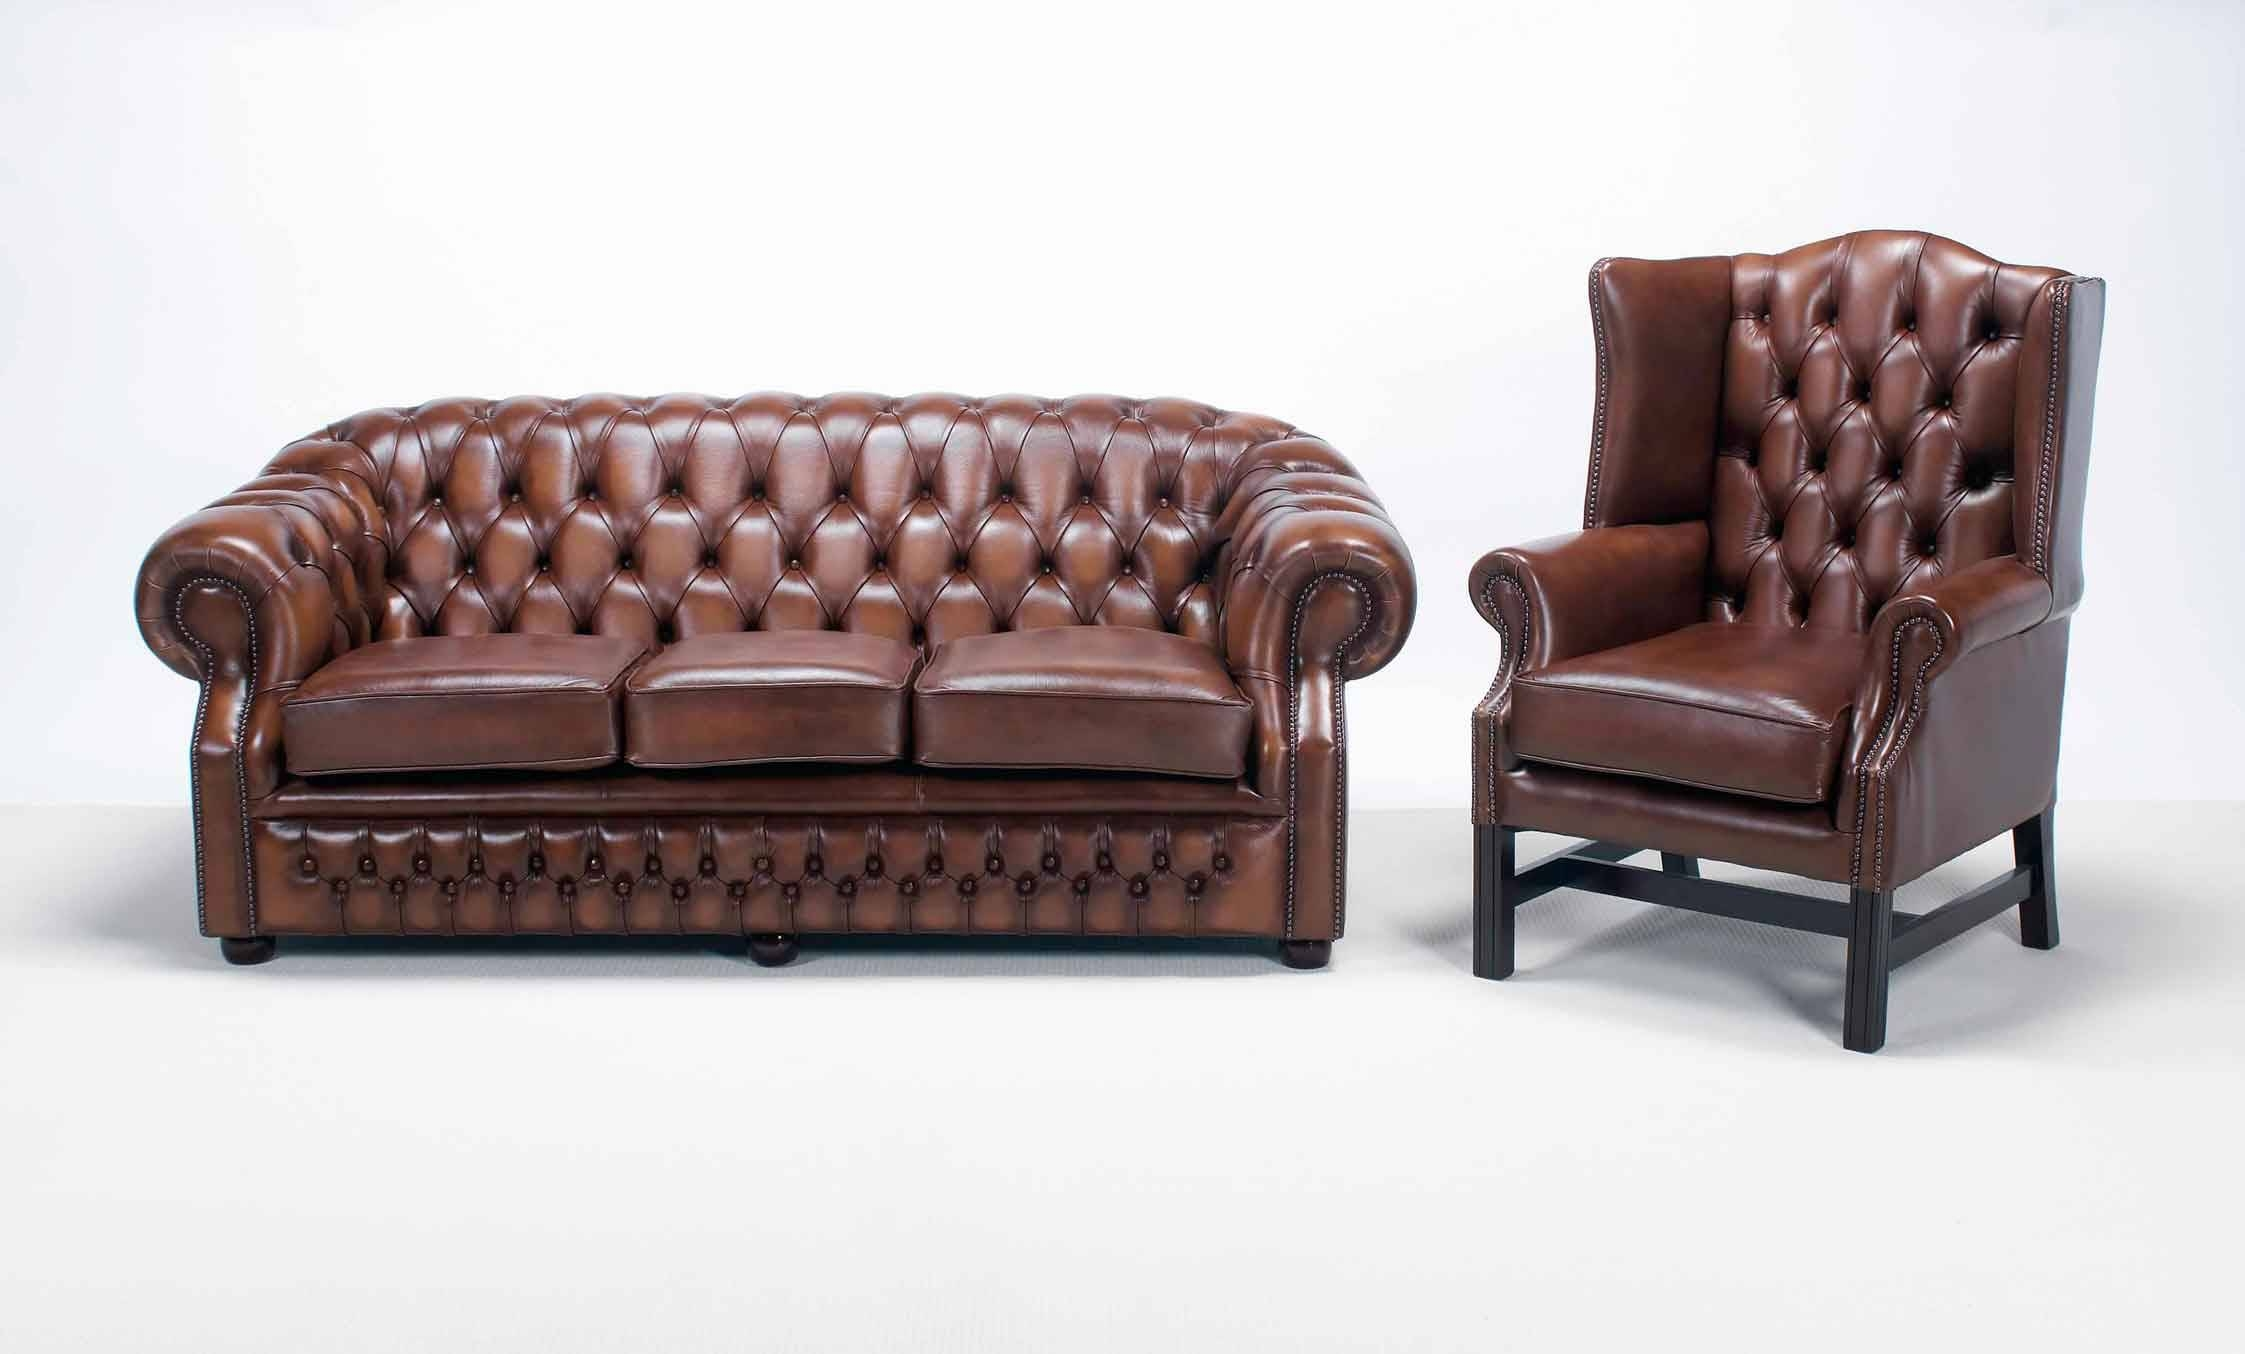 How To Identify A Real Chesterfield Sofa — Interior Home Design for Leather Chesterfield Sofas (Image 16 of 30)